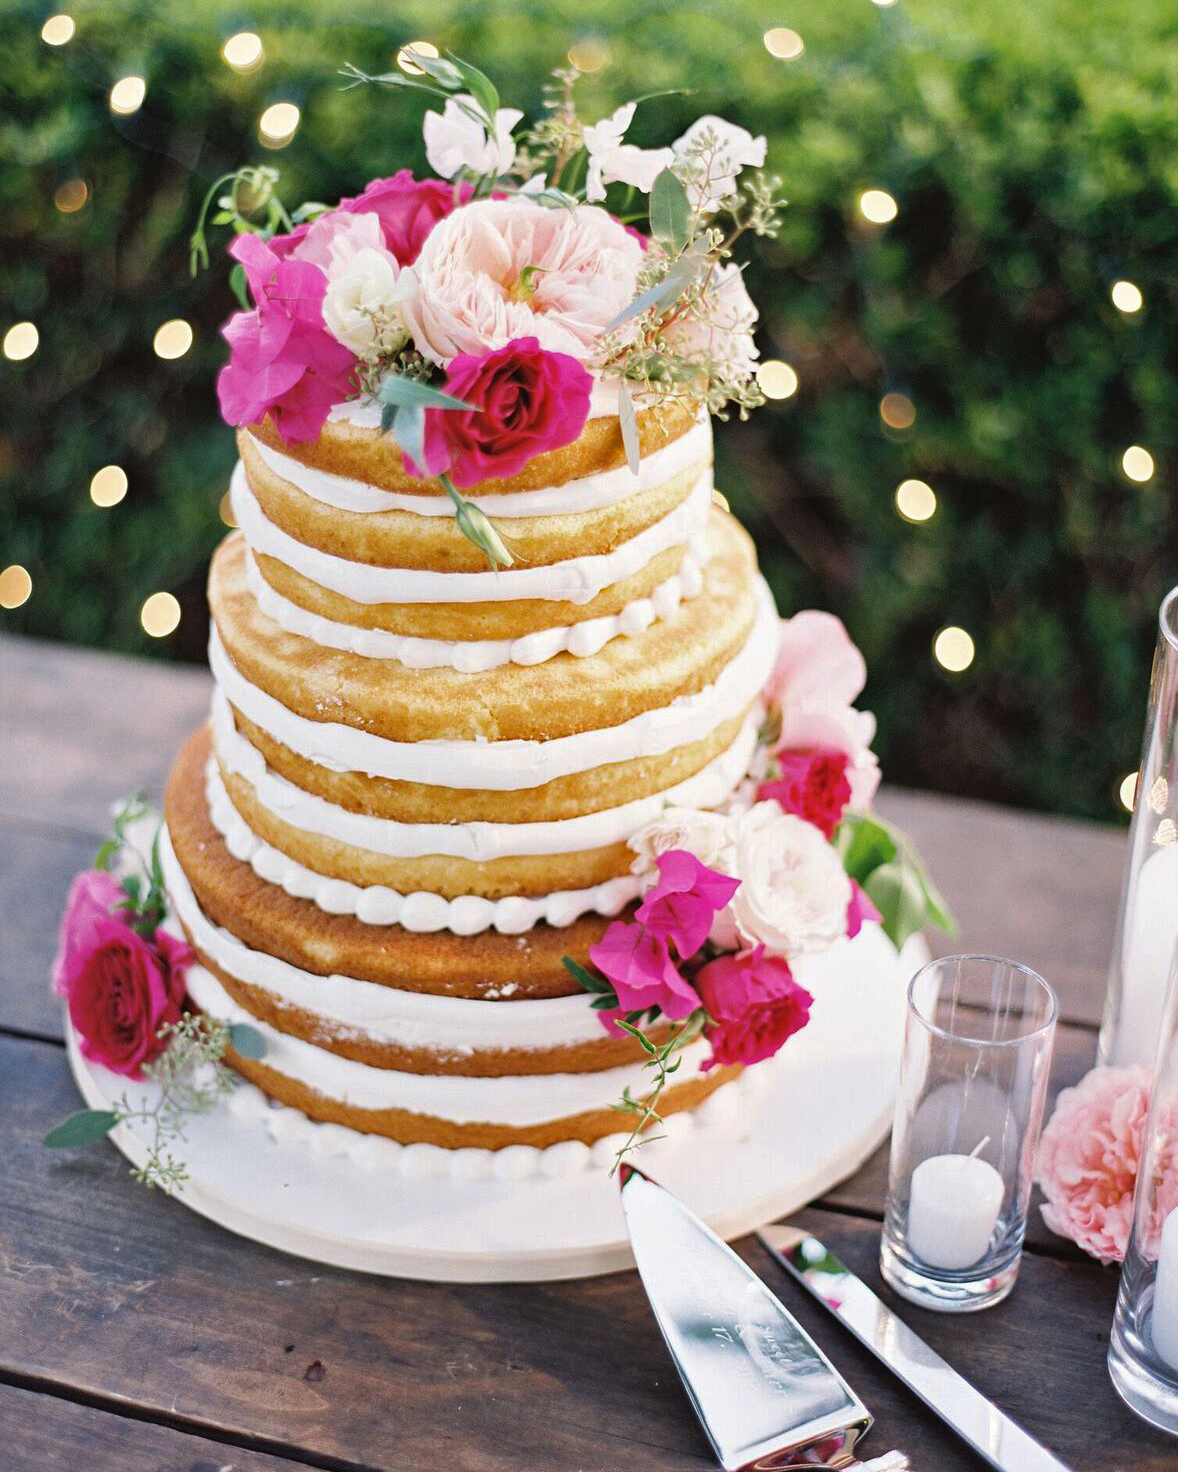 Naked Wedding Cake: The Good, The Bad & The Ugly